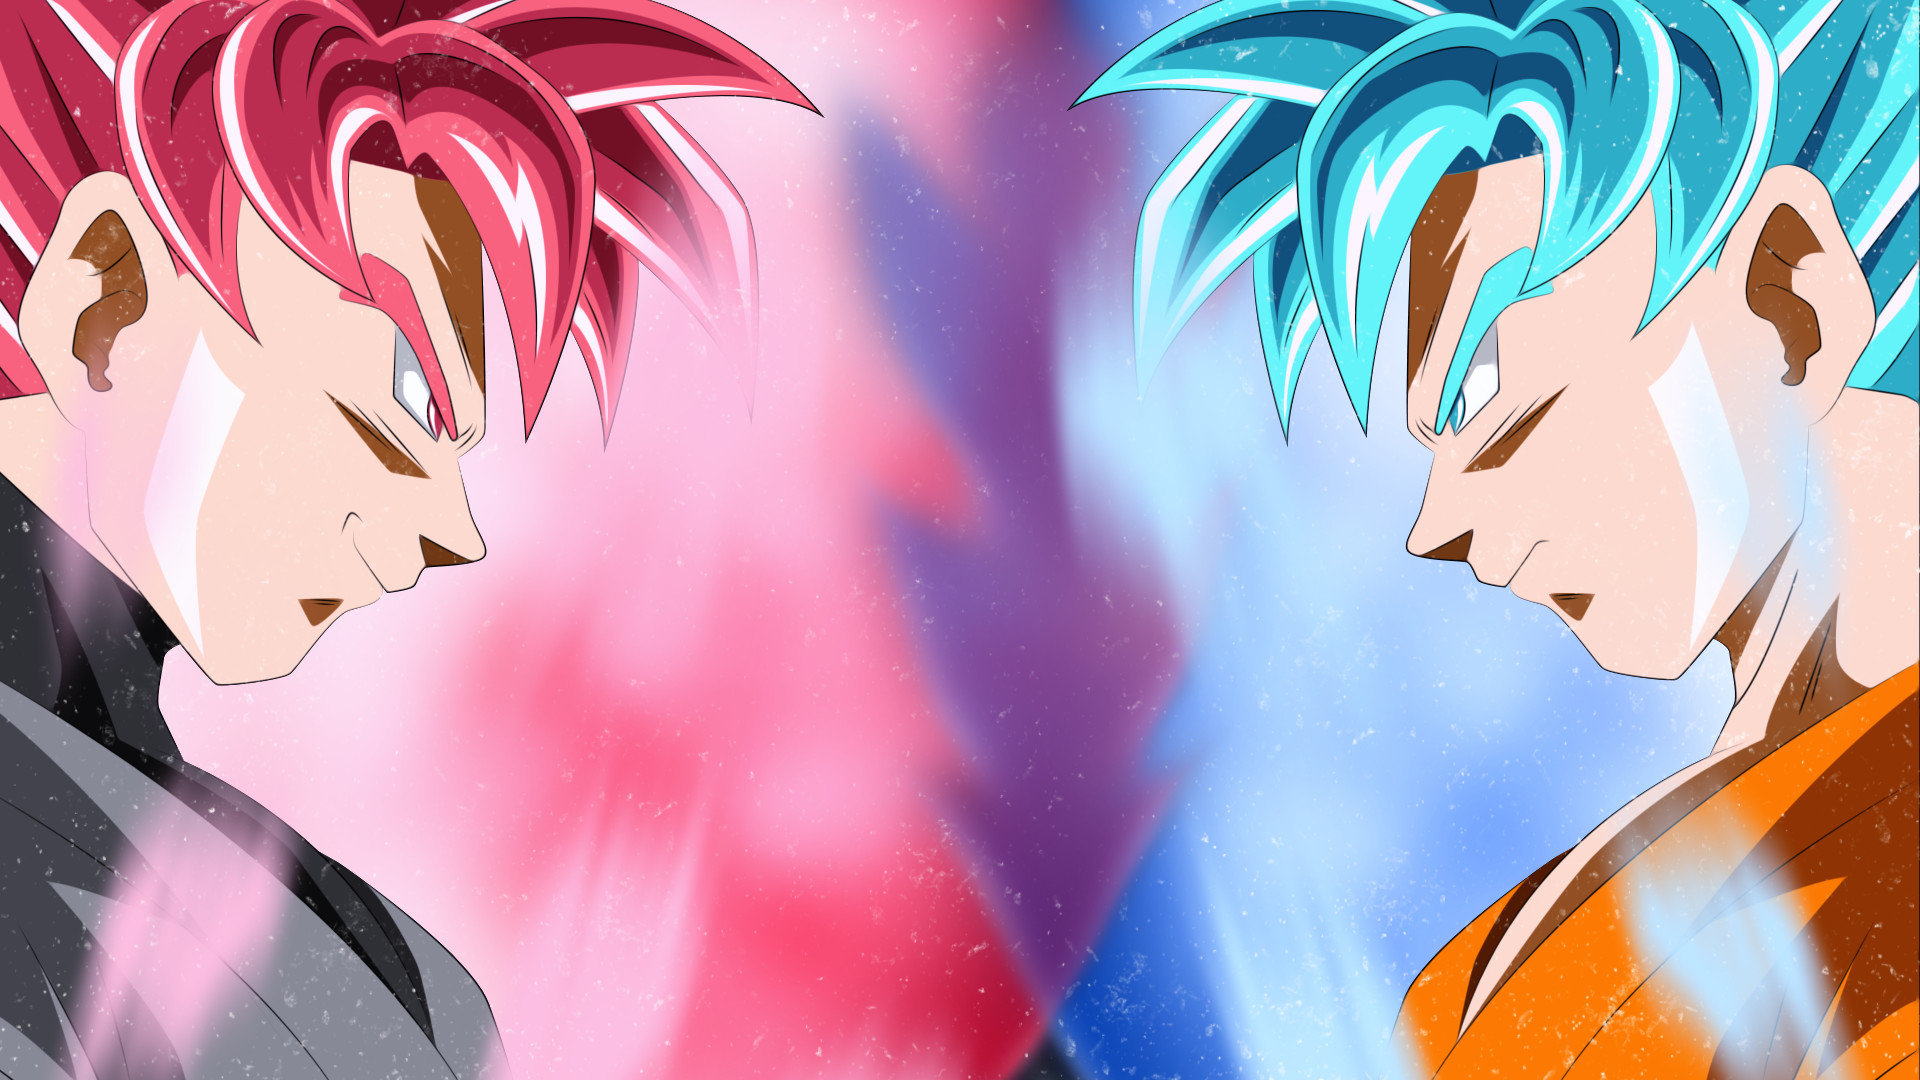 Dragon Ball Z Dbz Wallpapers 1920x1080 Full Hd 1080p Desktop